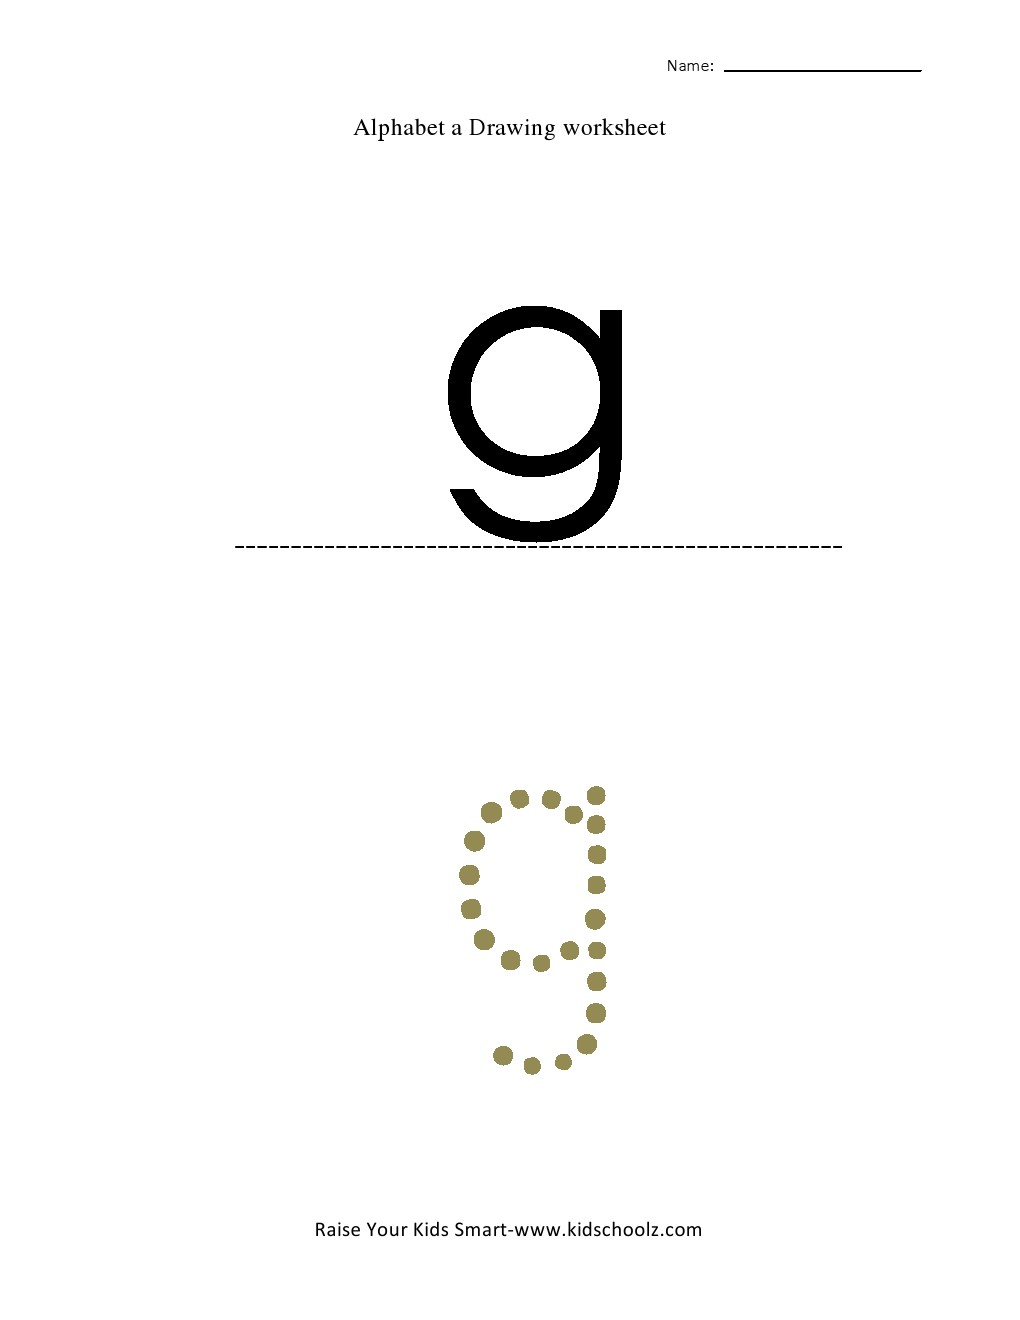 Tracing Small Letter Alphabets G Kidschoolz